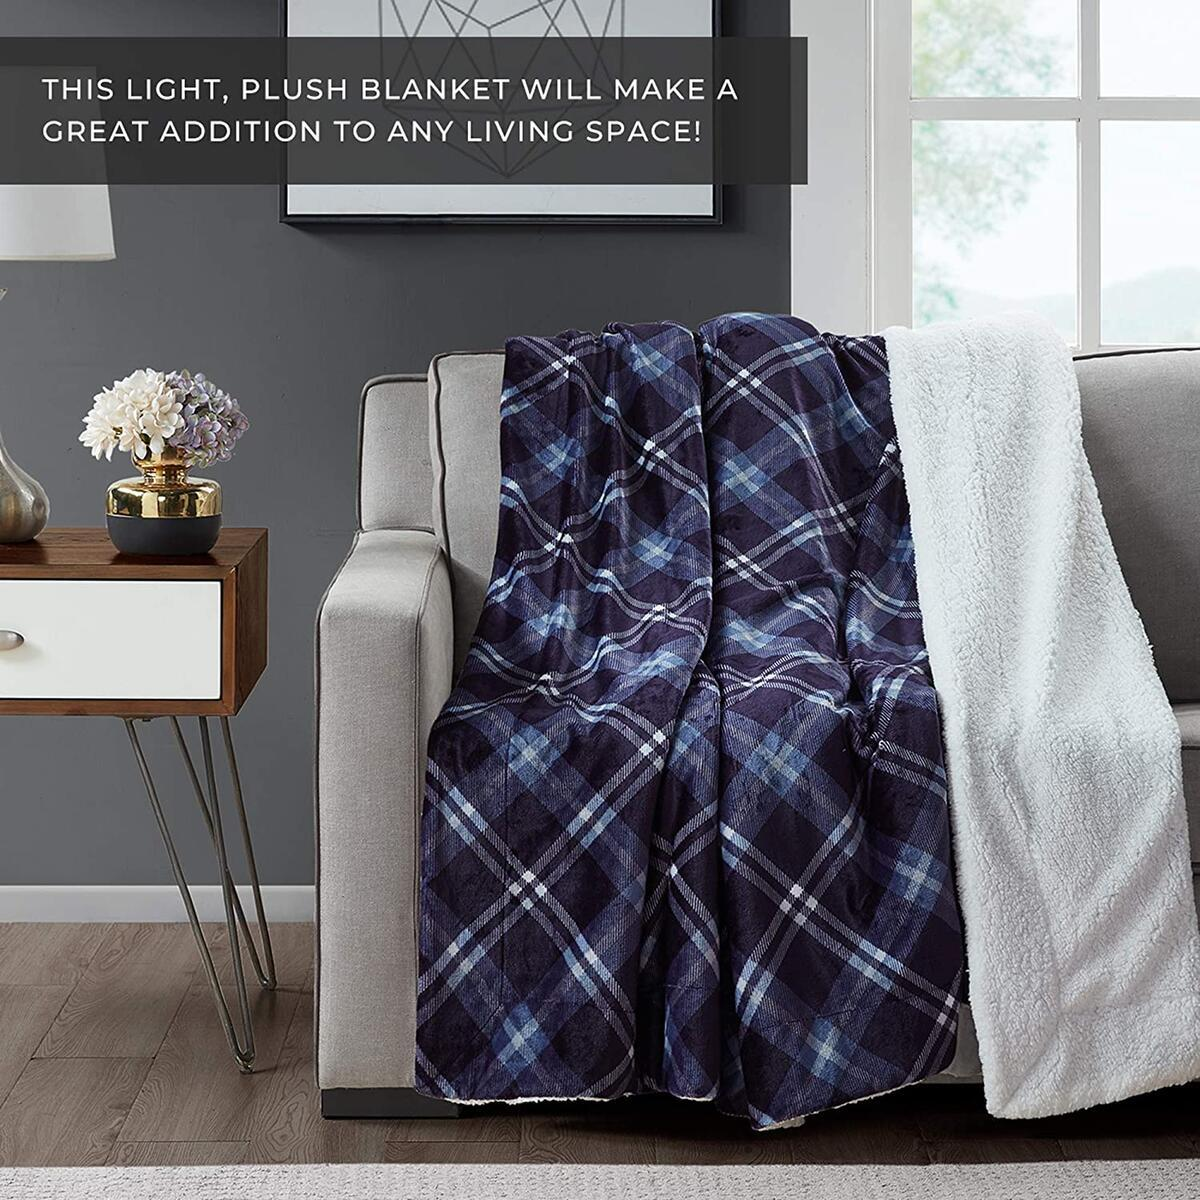 Soft Sherpa Micro Fleece Blanket King Size, Fuzzy Plush Cozy Flannel Reversible Blanket for Sofa, Couch, Bed - 108x90 Inches, Blue Plaid